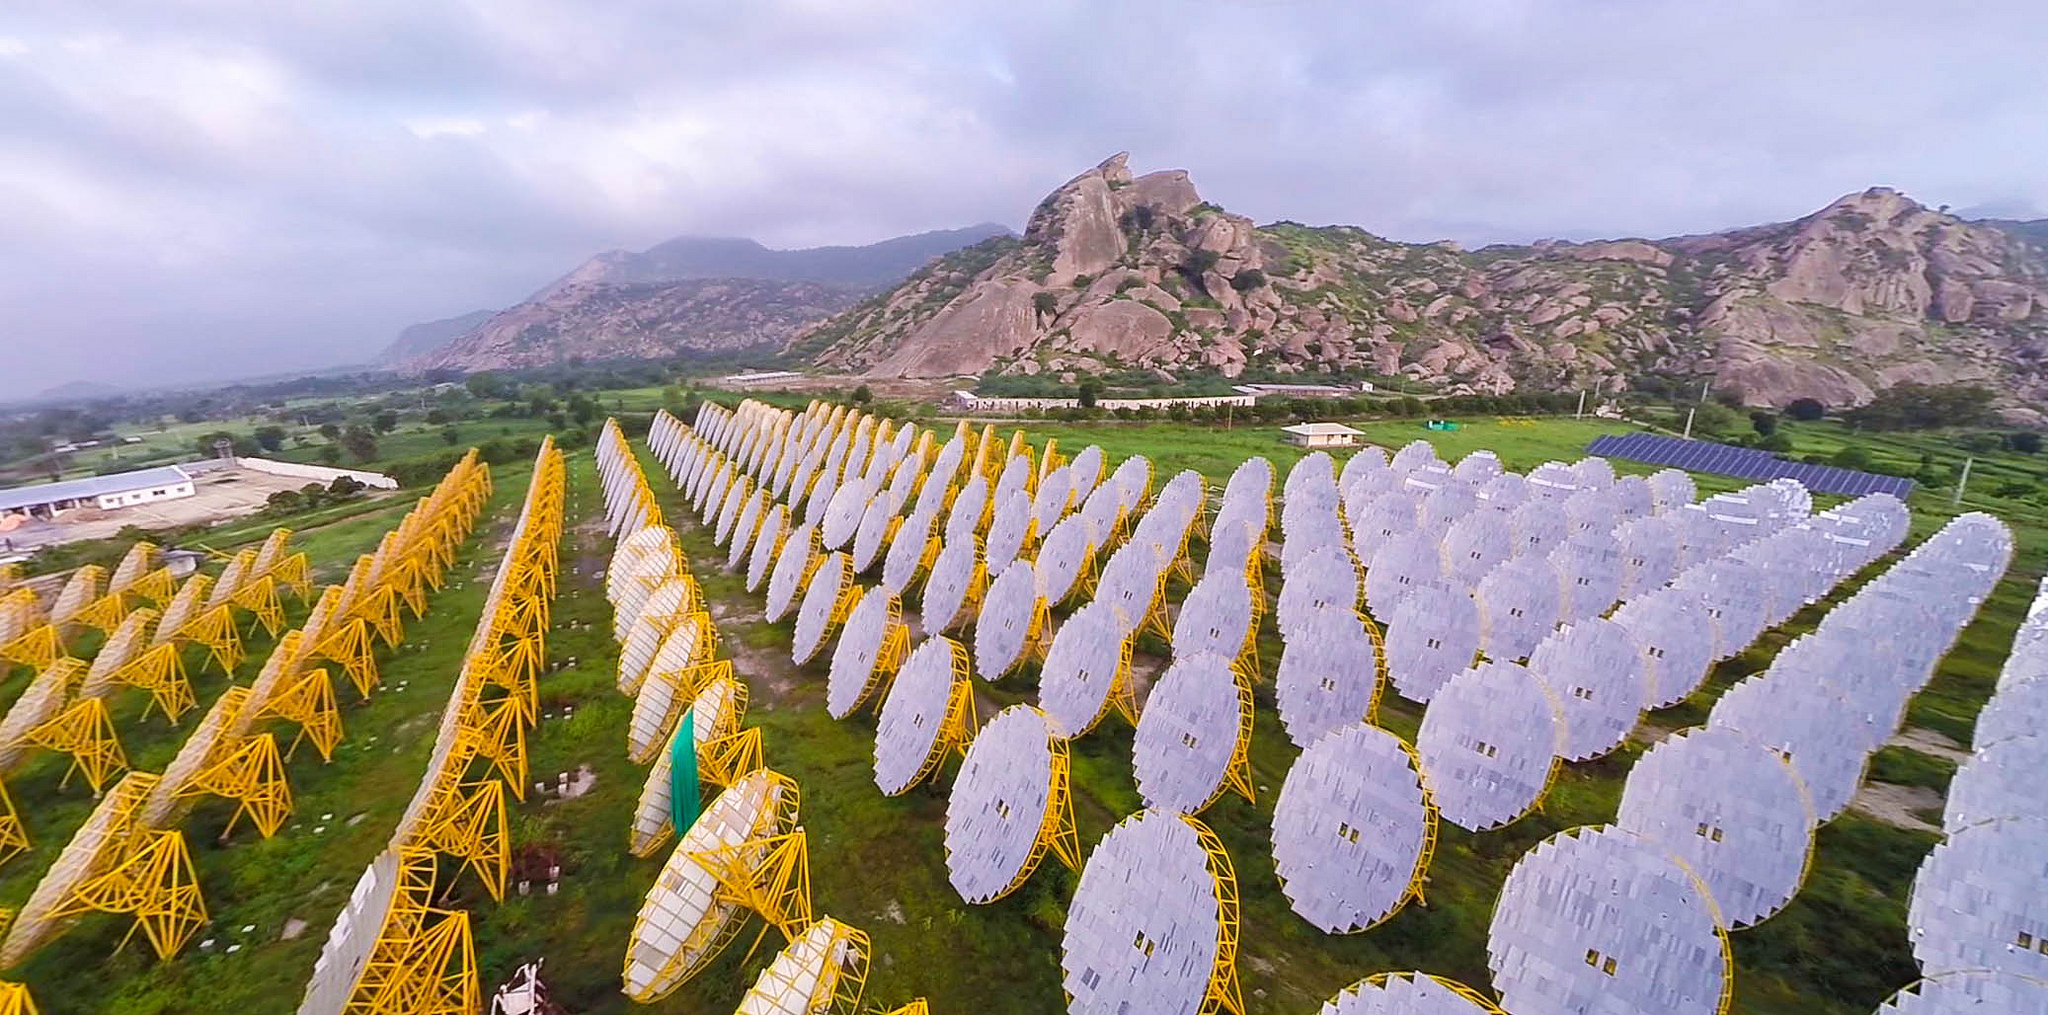 India One, a one megawatt solar thermal power plant in Rajasthan, India. Photo by  Brahma Kumaris .